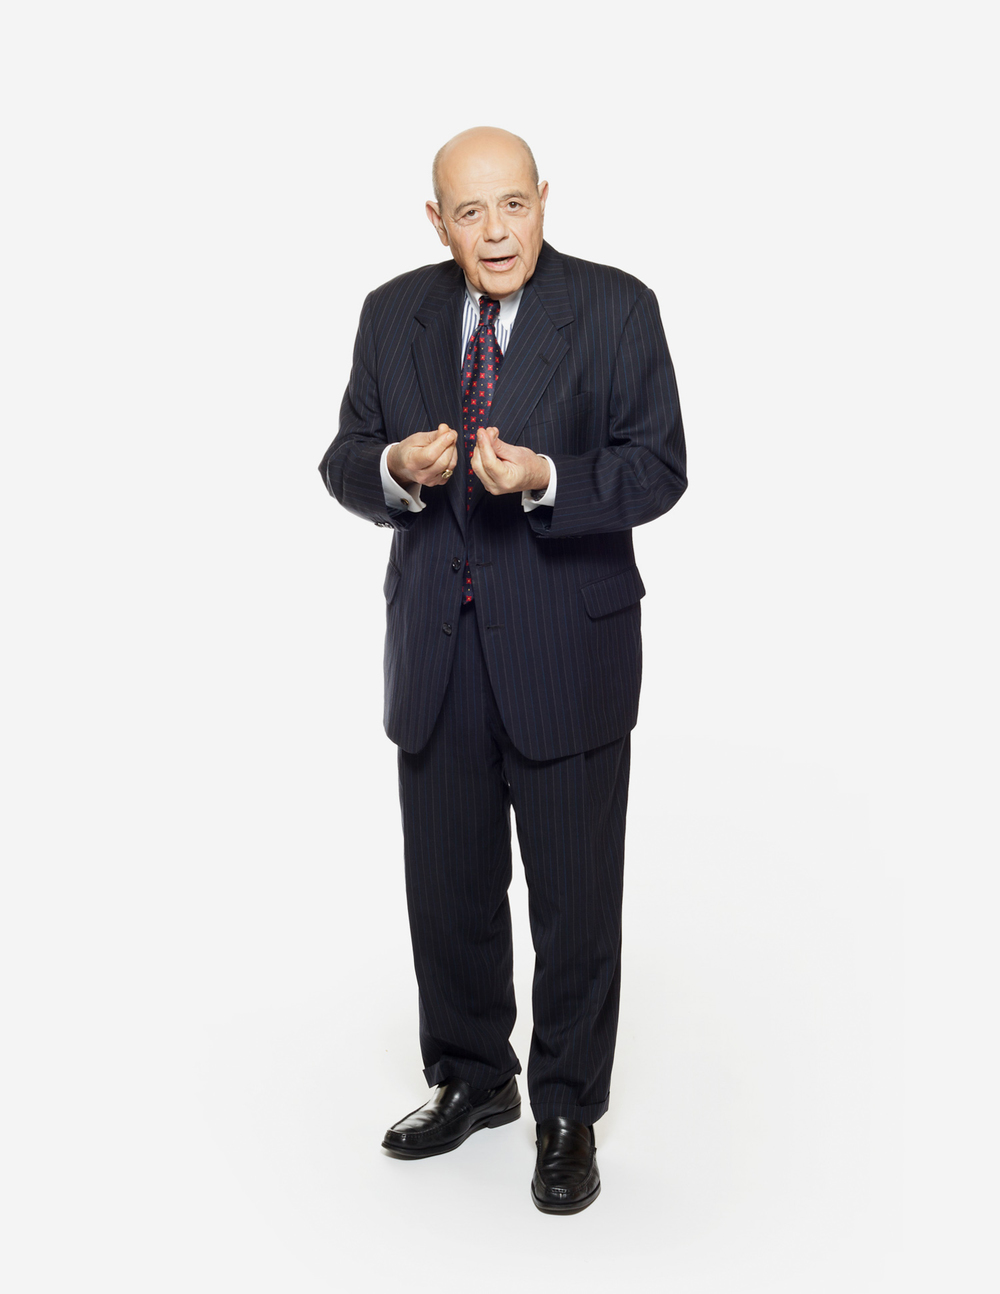 Buddy Cianci photographed by Adam DeTour